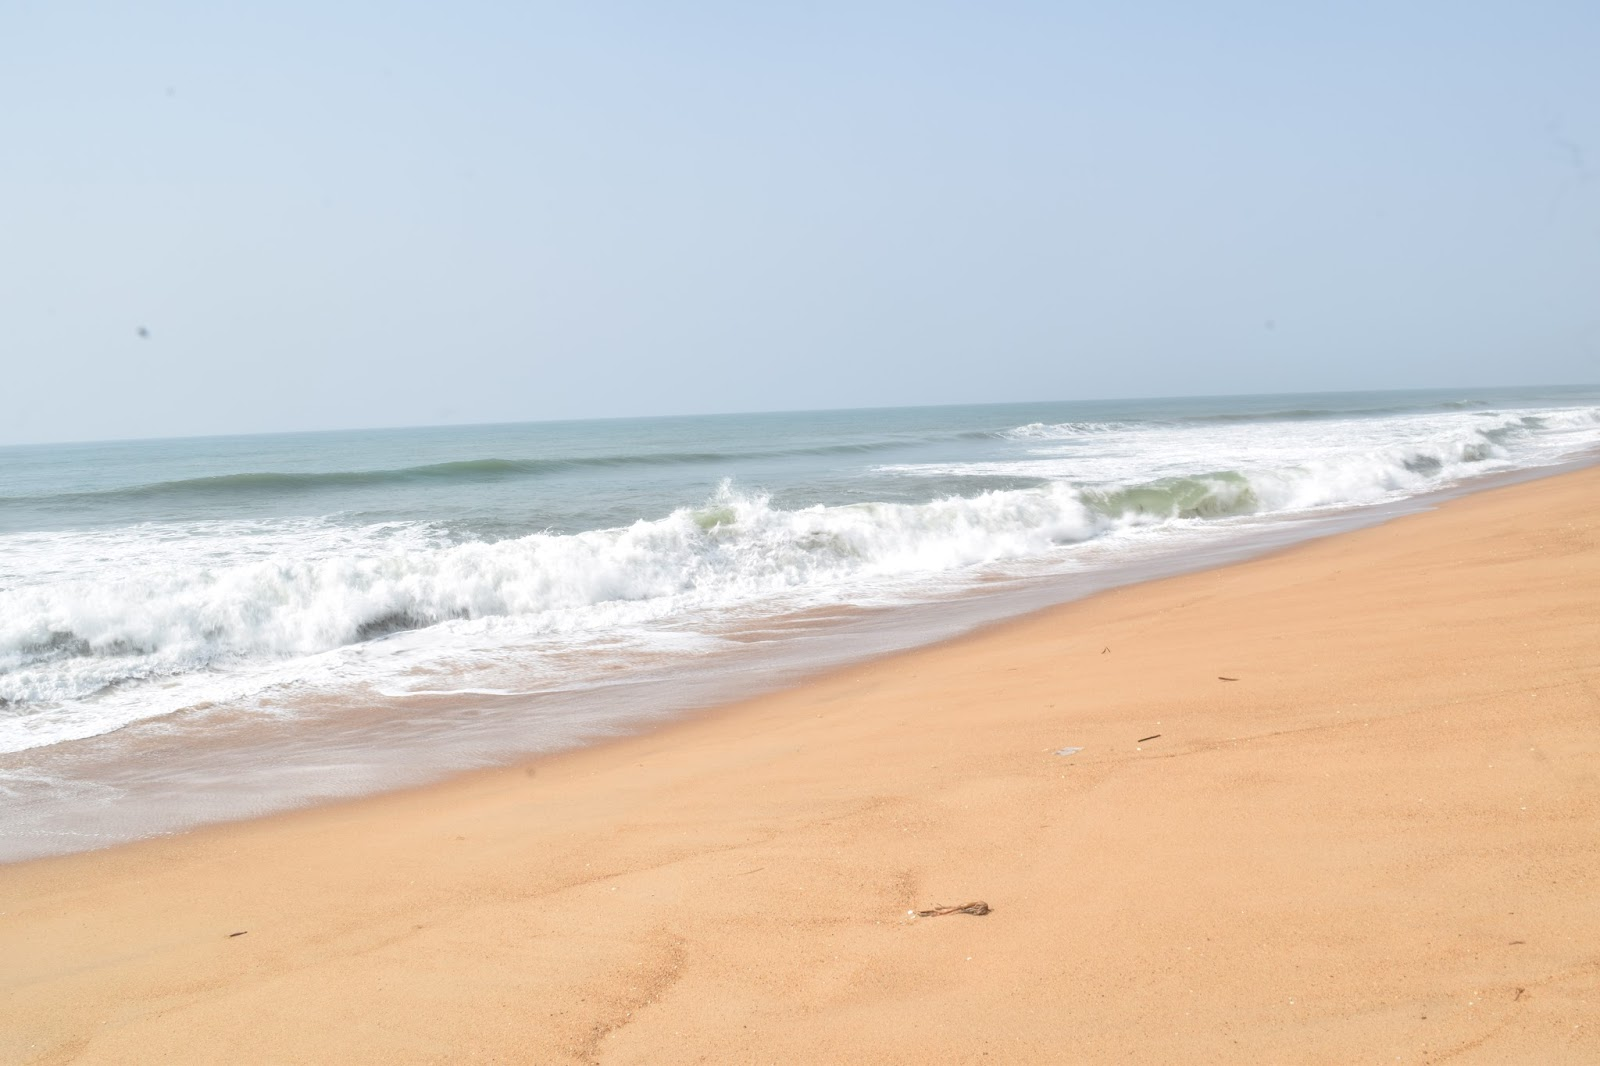 Benin Republic beach